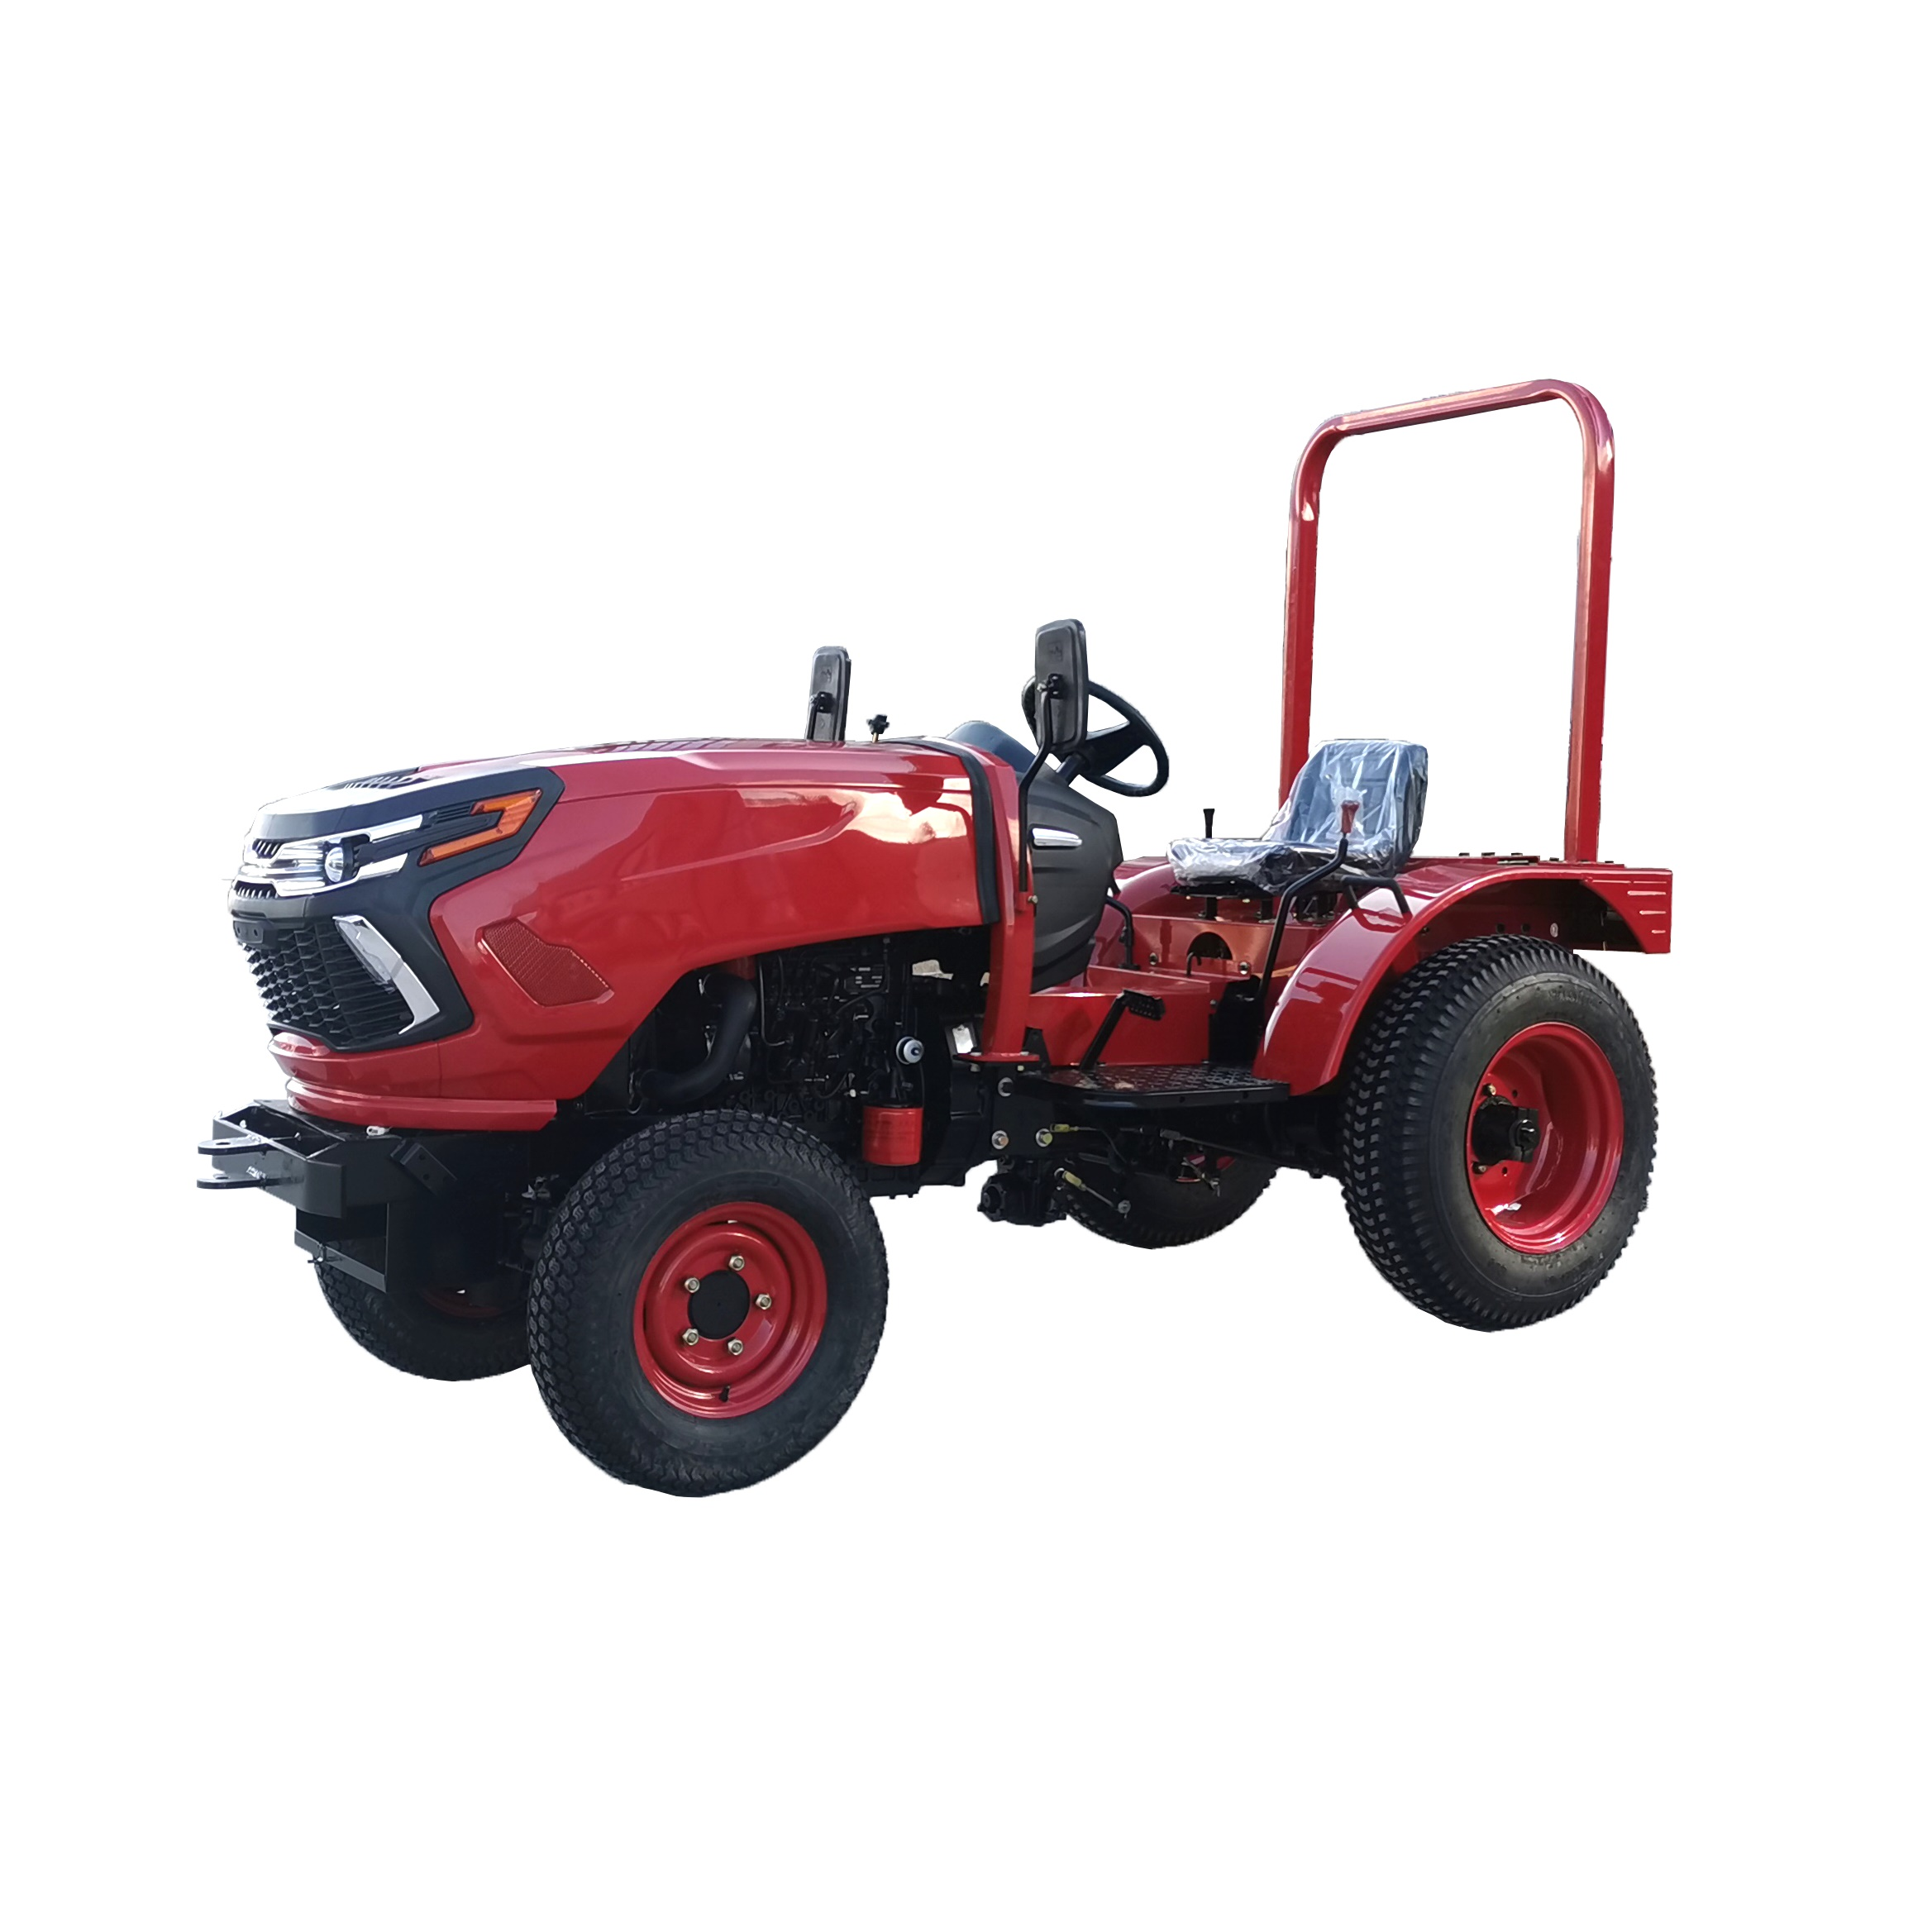 35HP 4x4 compact farm tractor with loader and backhoe